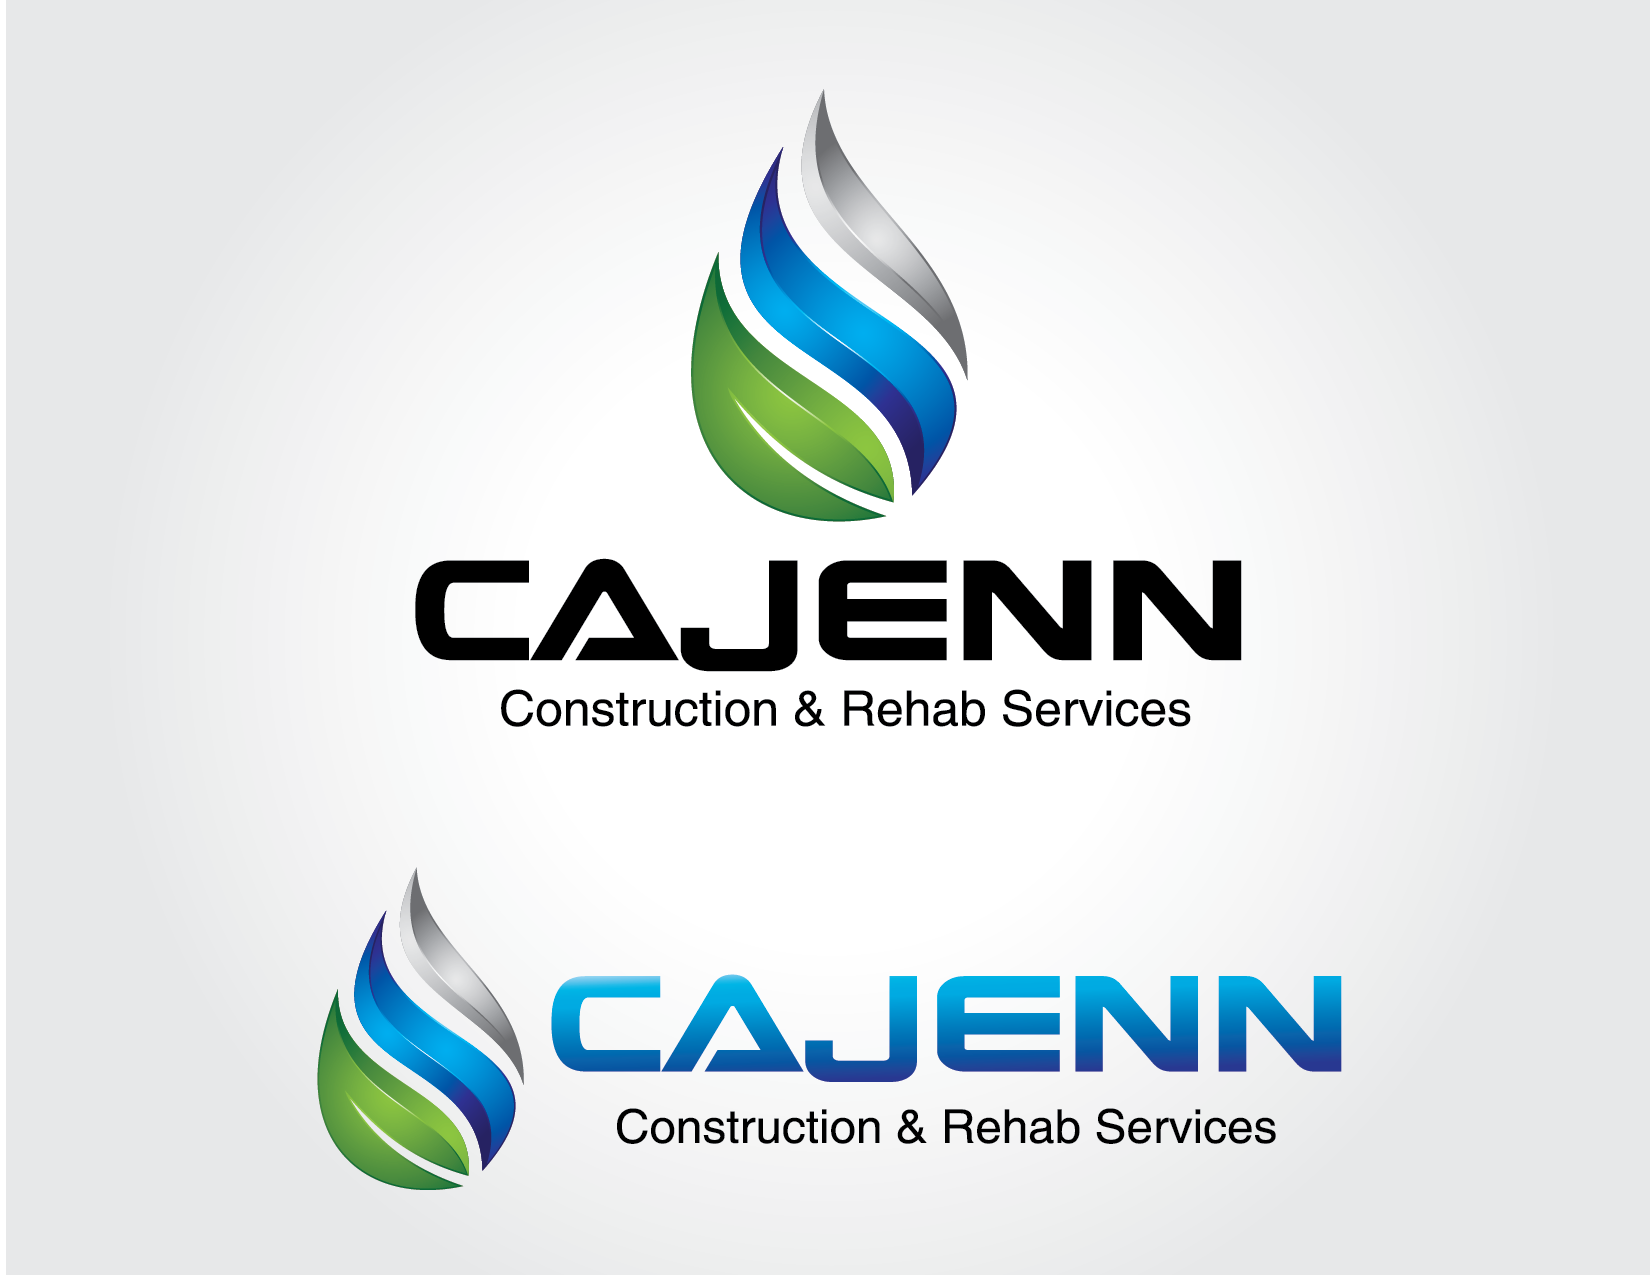 Logo Design by Yansen Yansen - Entry No. 108 in the Logo Design Contest New Logo Design for CaJenn Construction & Rehab Services.